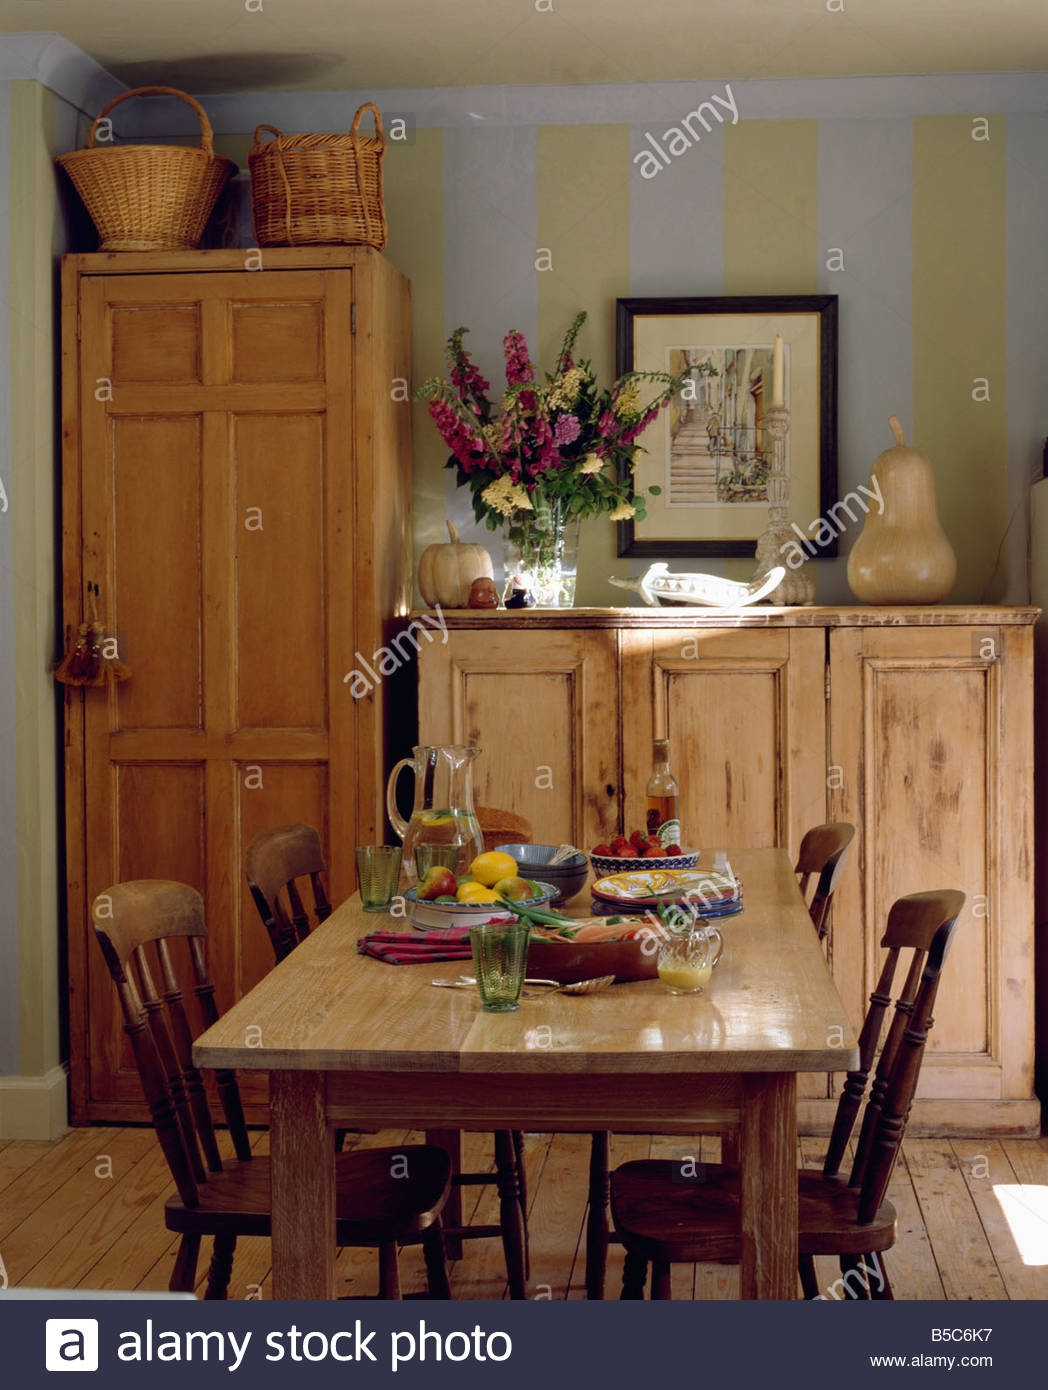 Wooden Table And Chairs In Country Dining Room With Wooden With Regard To Table Cupboards (Image 25 of 25)